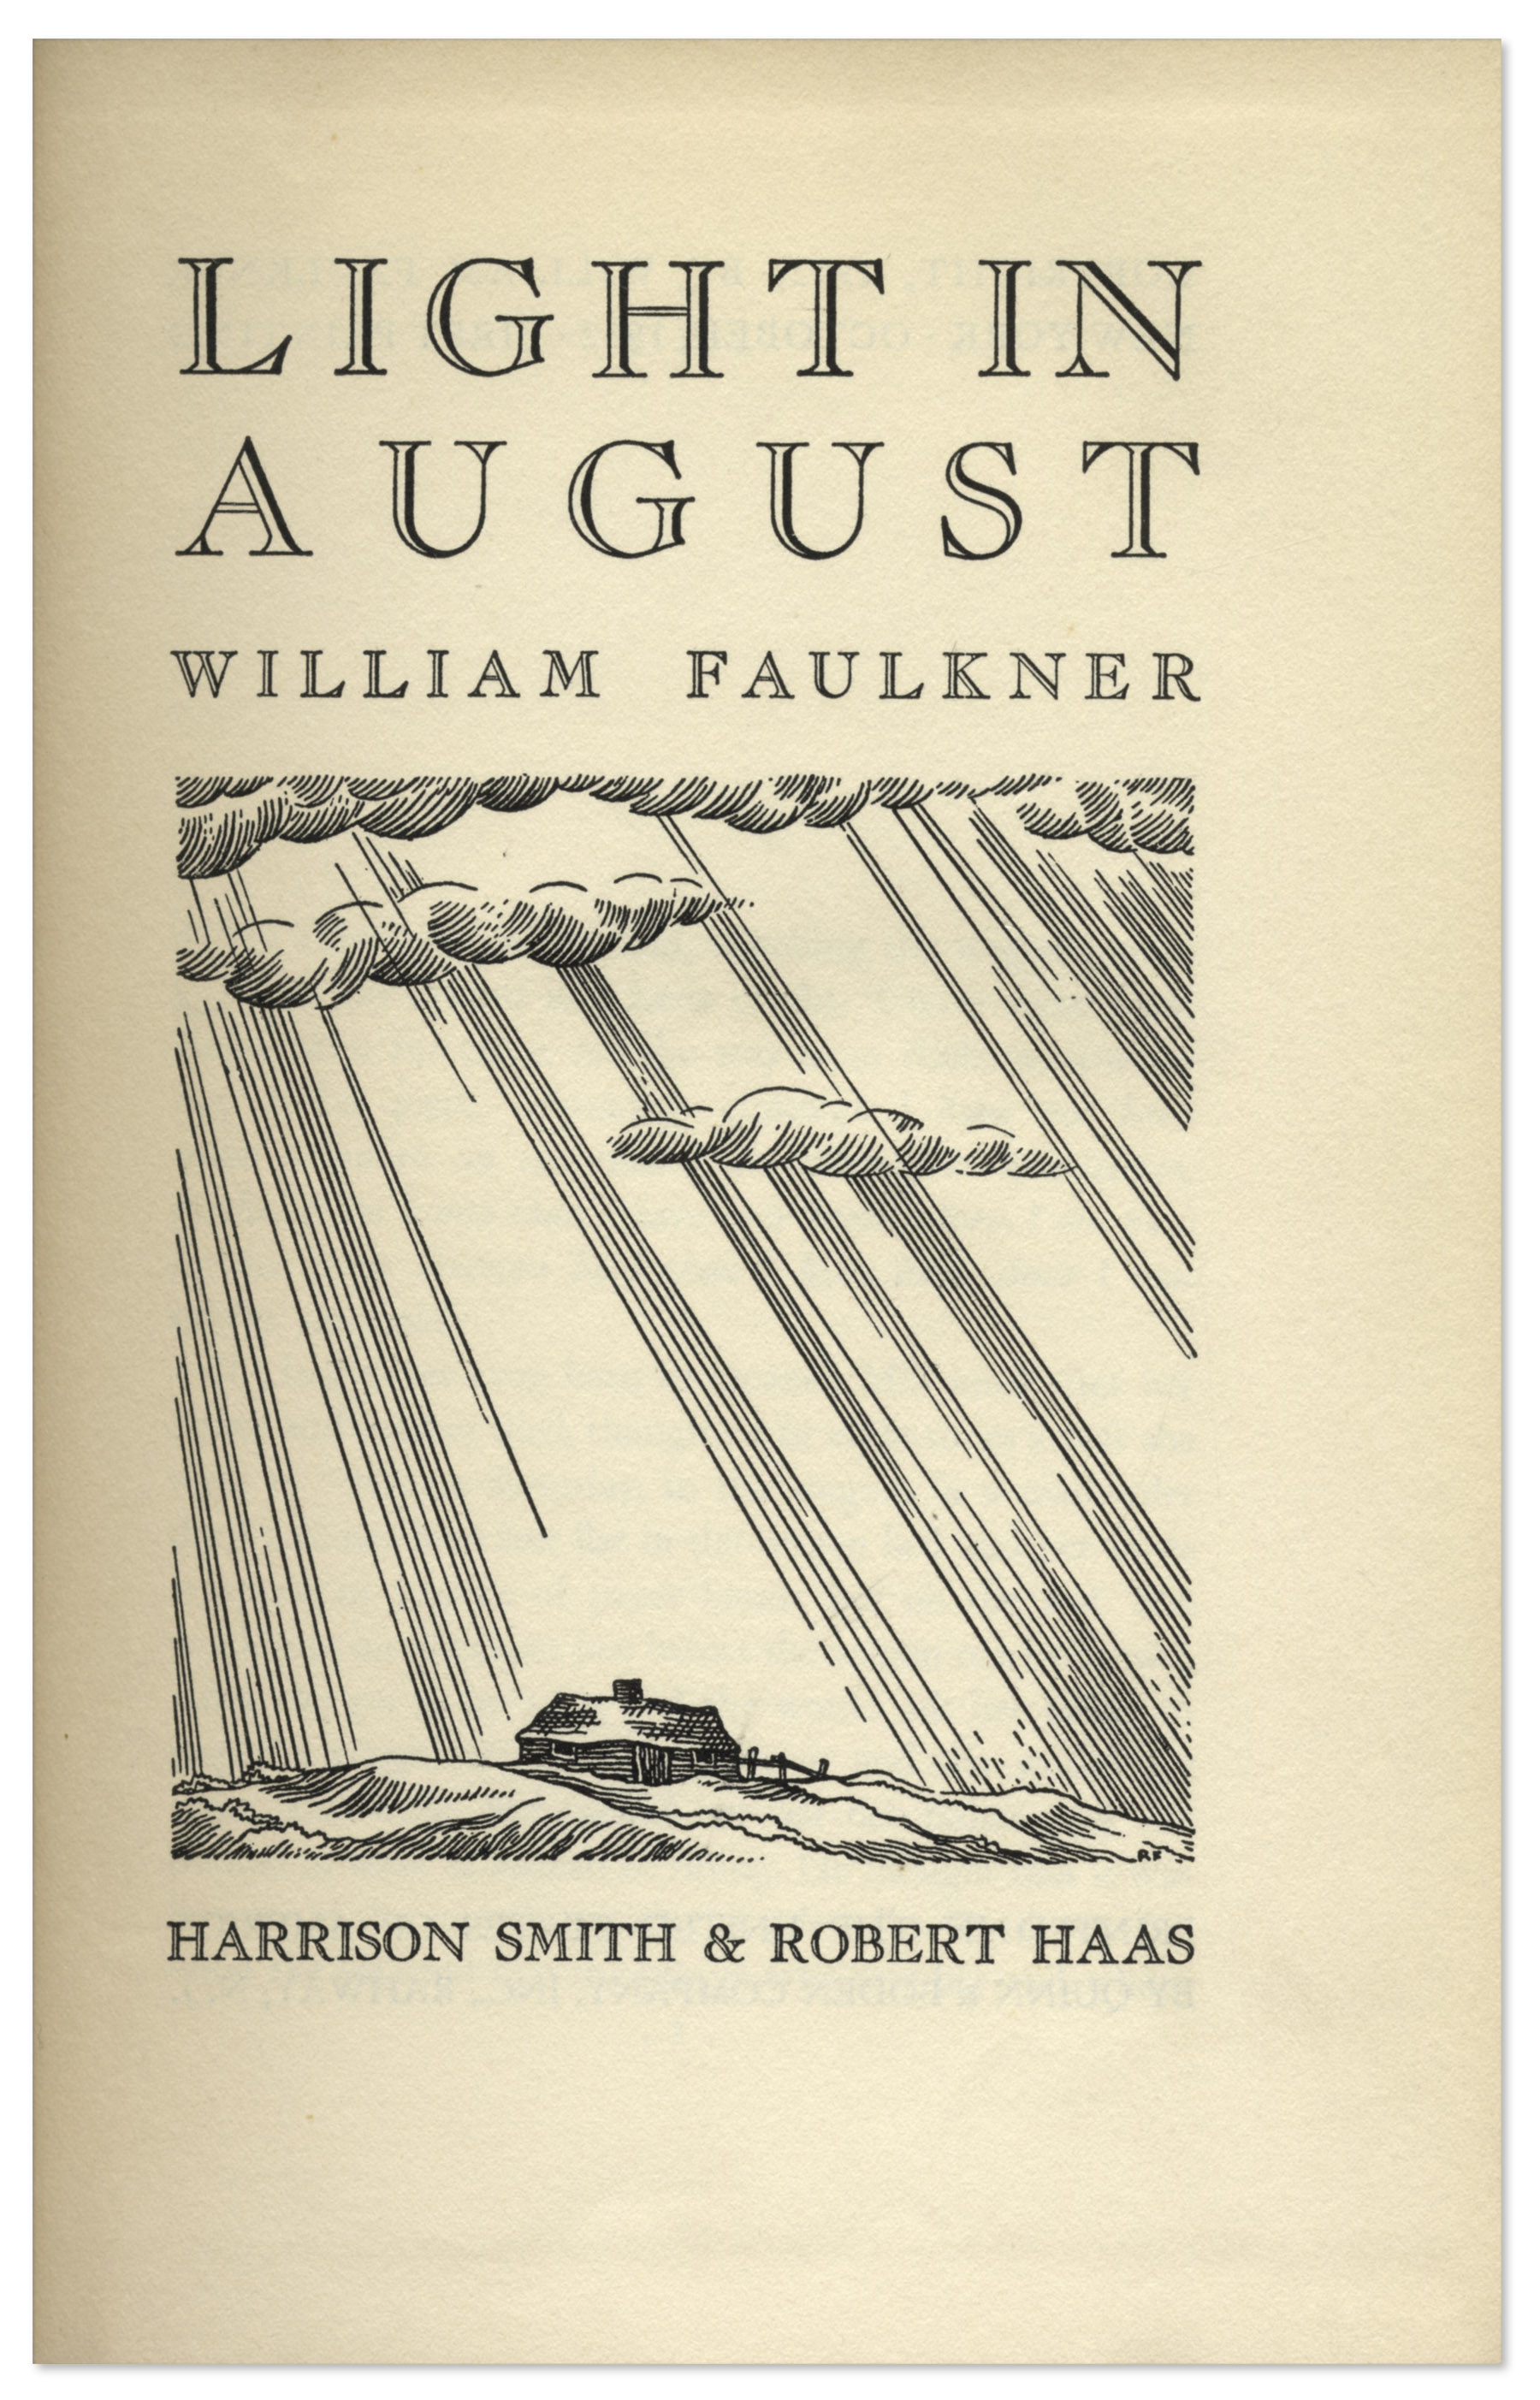 major themes in faulkner s light in Thus the south of light in august seems to have at least begun to move forward, yet the progress it has made is so miniscule that it only serves to highlight the light in august study guide contains a biography of william faulkner, literature essays, quiz questions, major themes, characters, and a full.